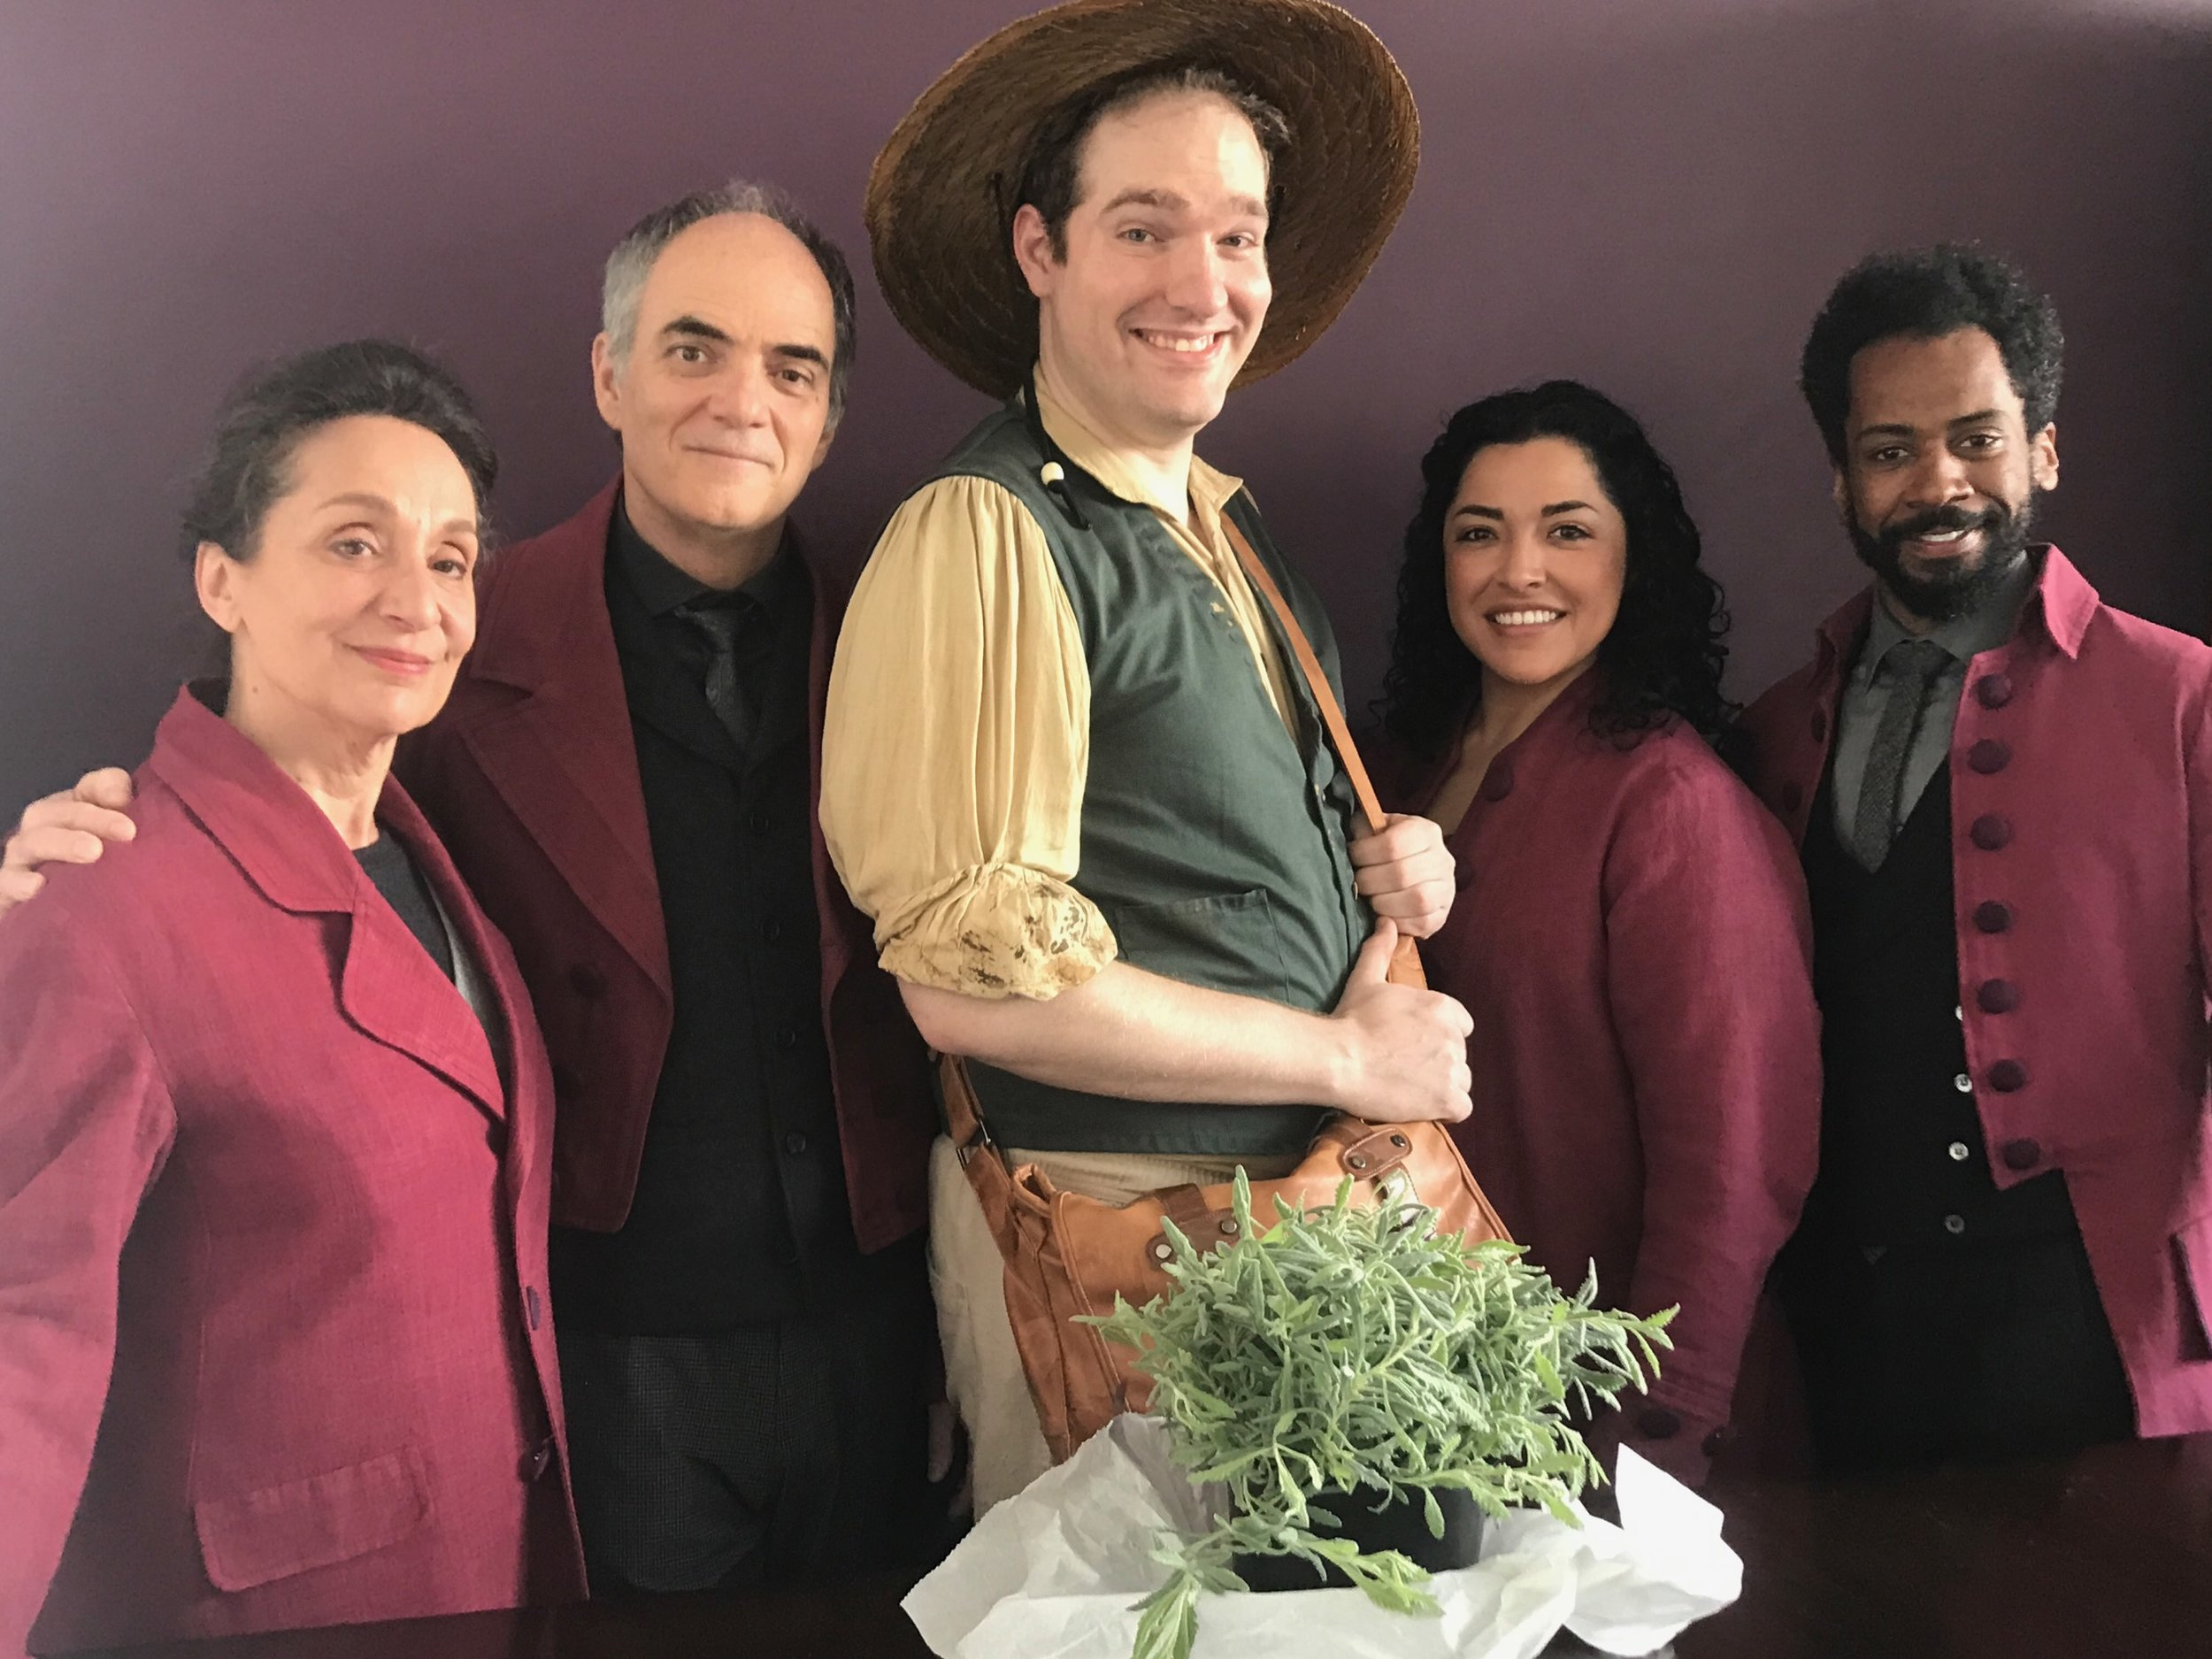 Left to Right: Phyllis Kay, Eric Hissom, Johnny Weissgerber (John Ousley), Jacqueline Correa and Joshua David Robinson.